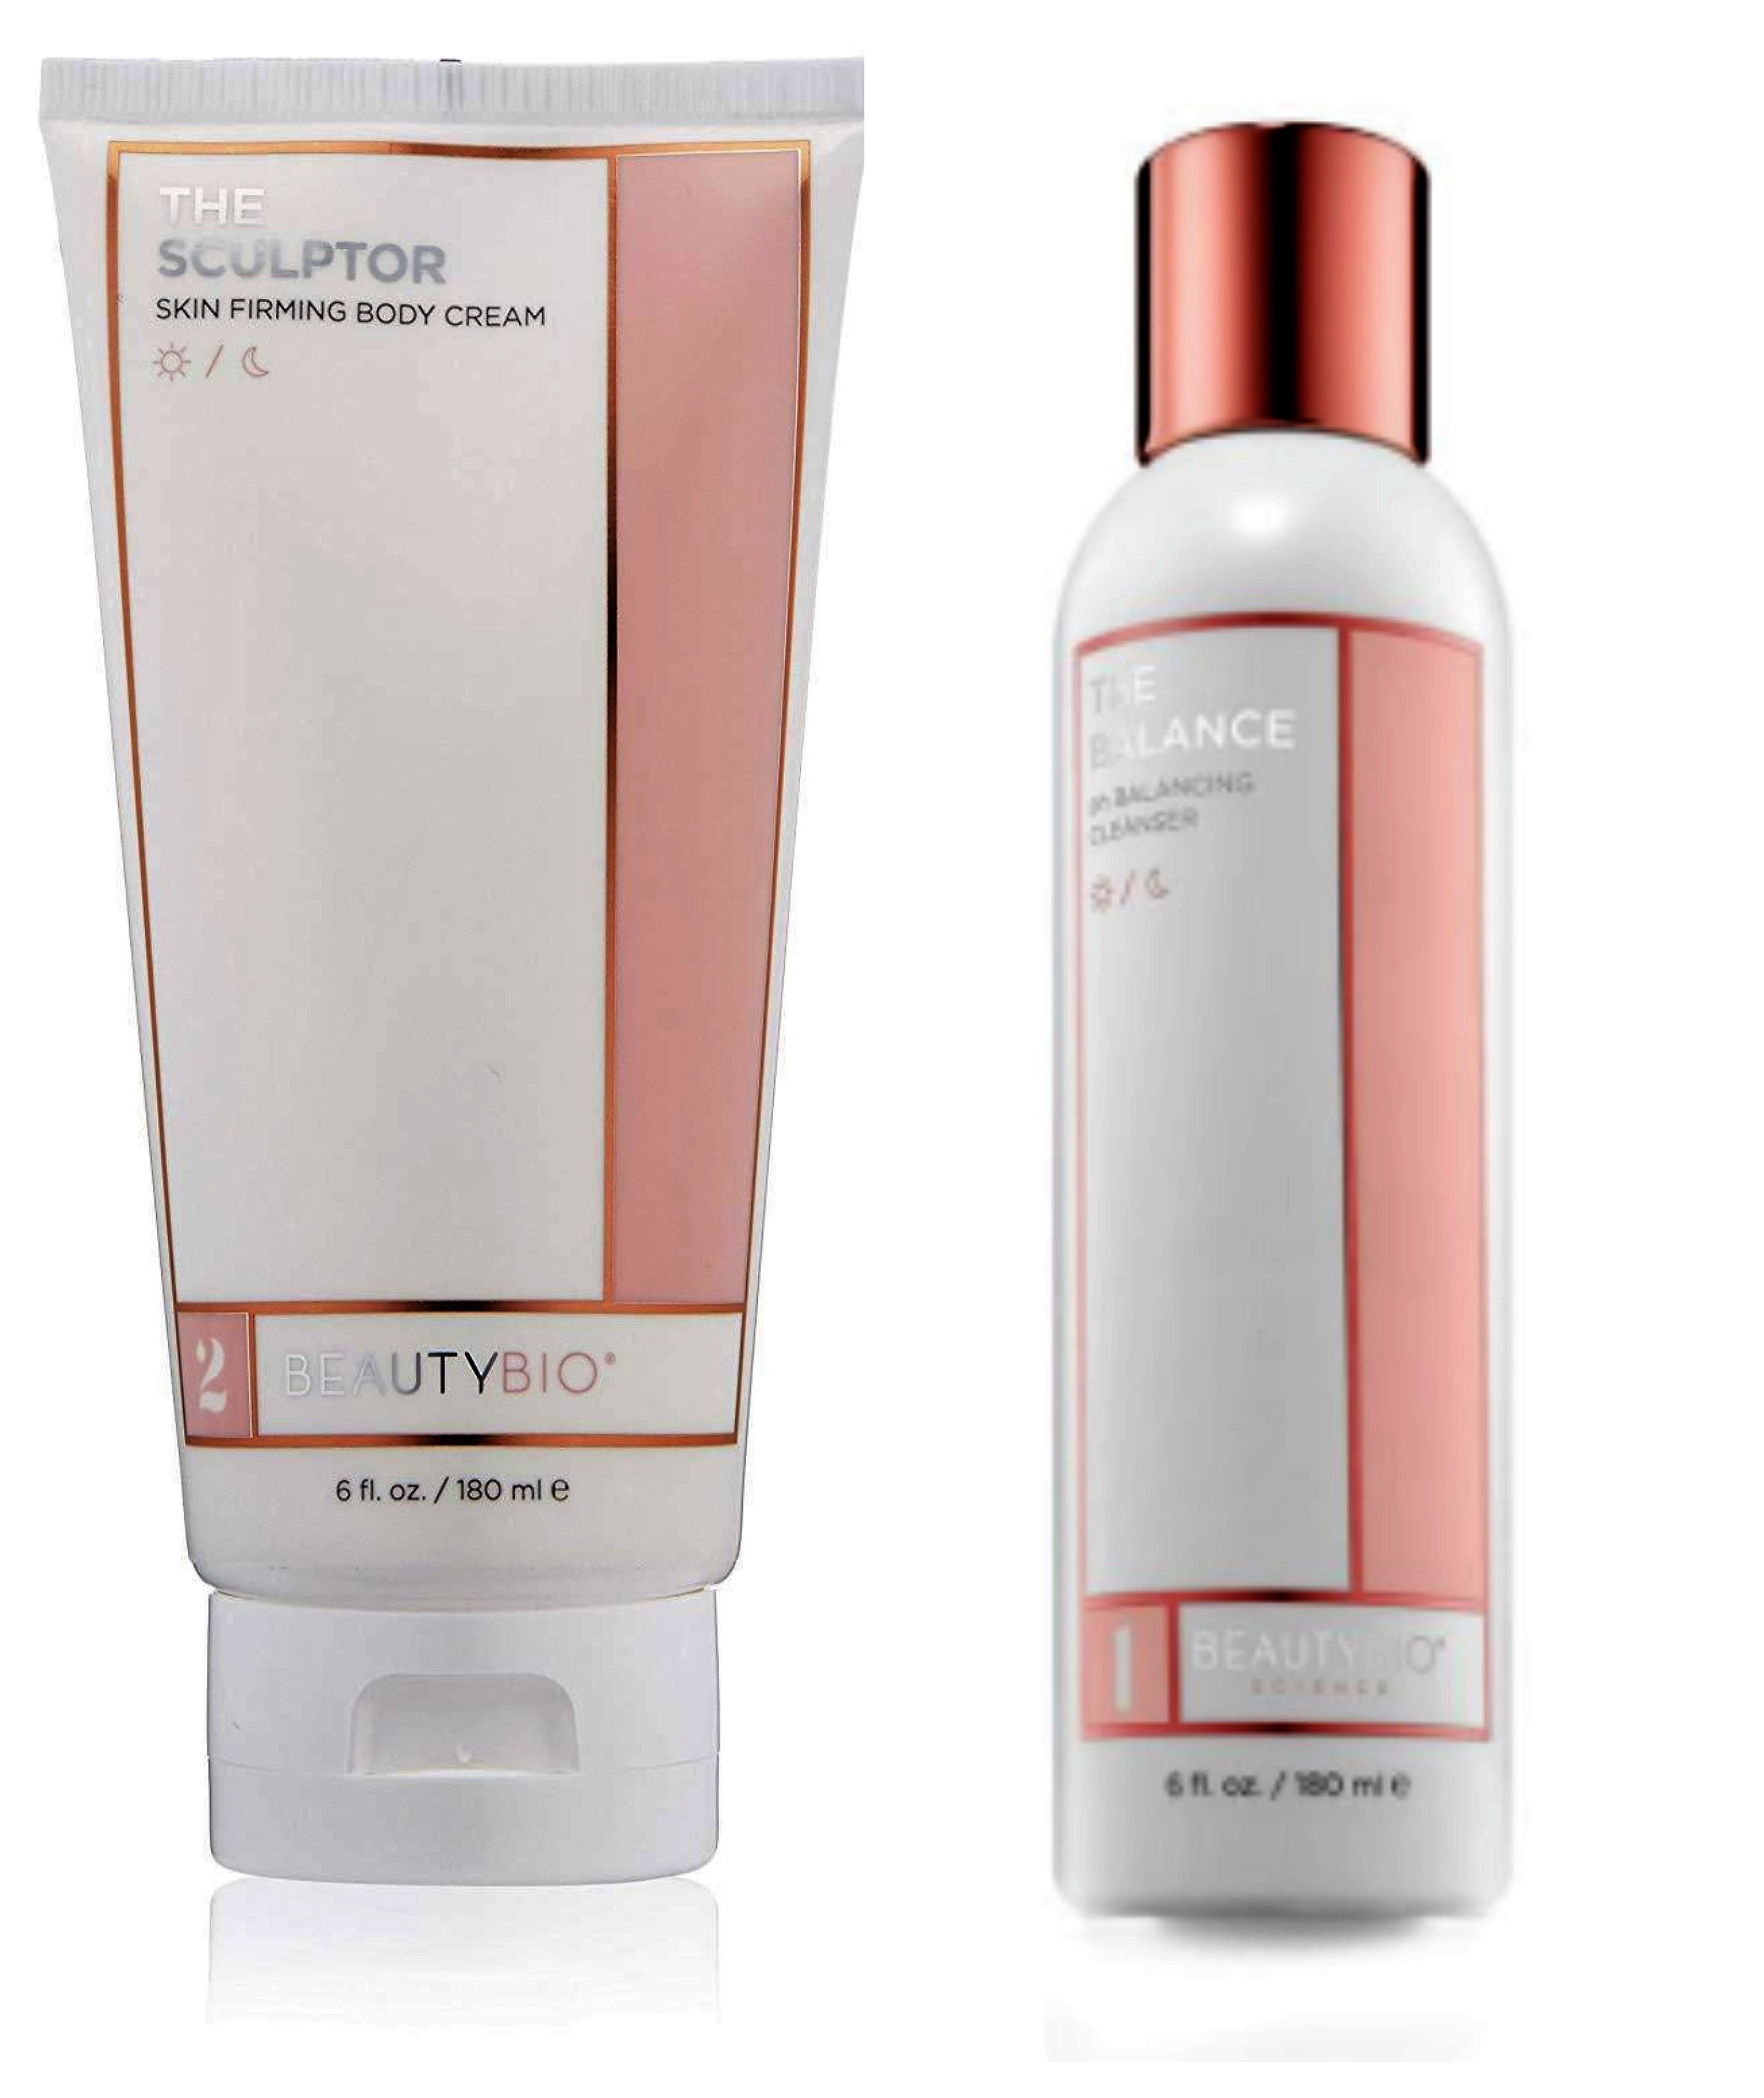 COMBO DEAL BeautyBio The SCULPTOR & The BALANCE Ph Balancing Cleanser